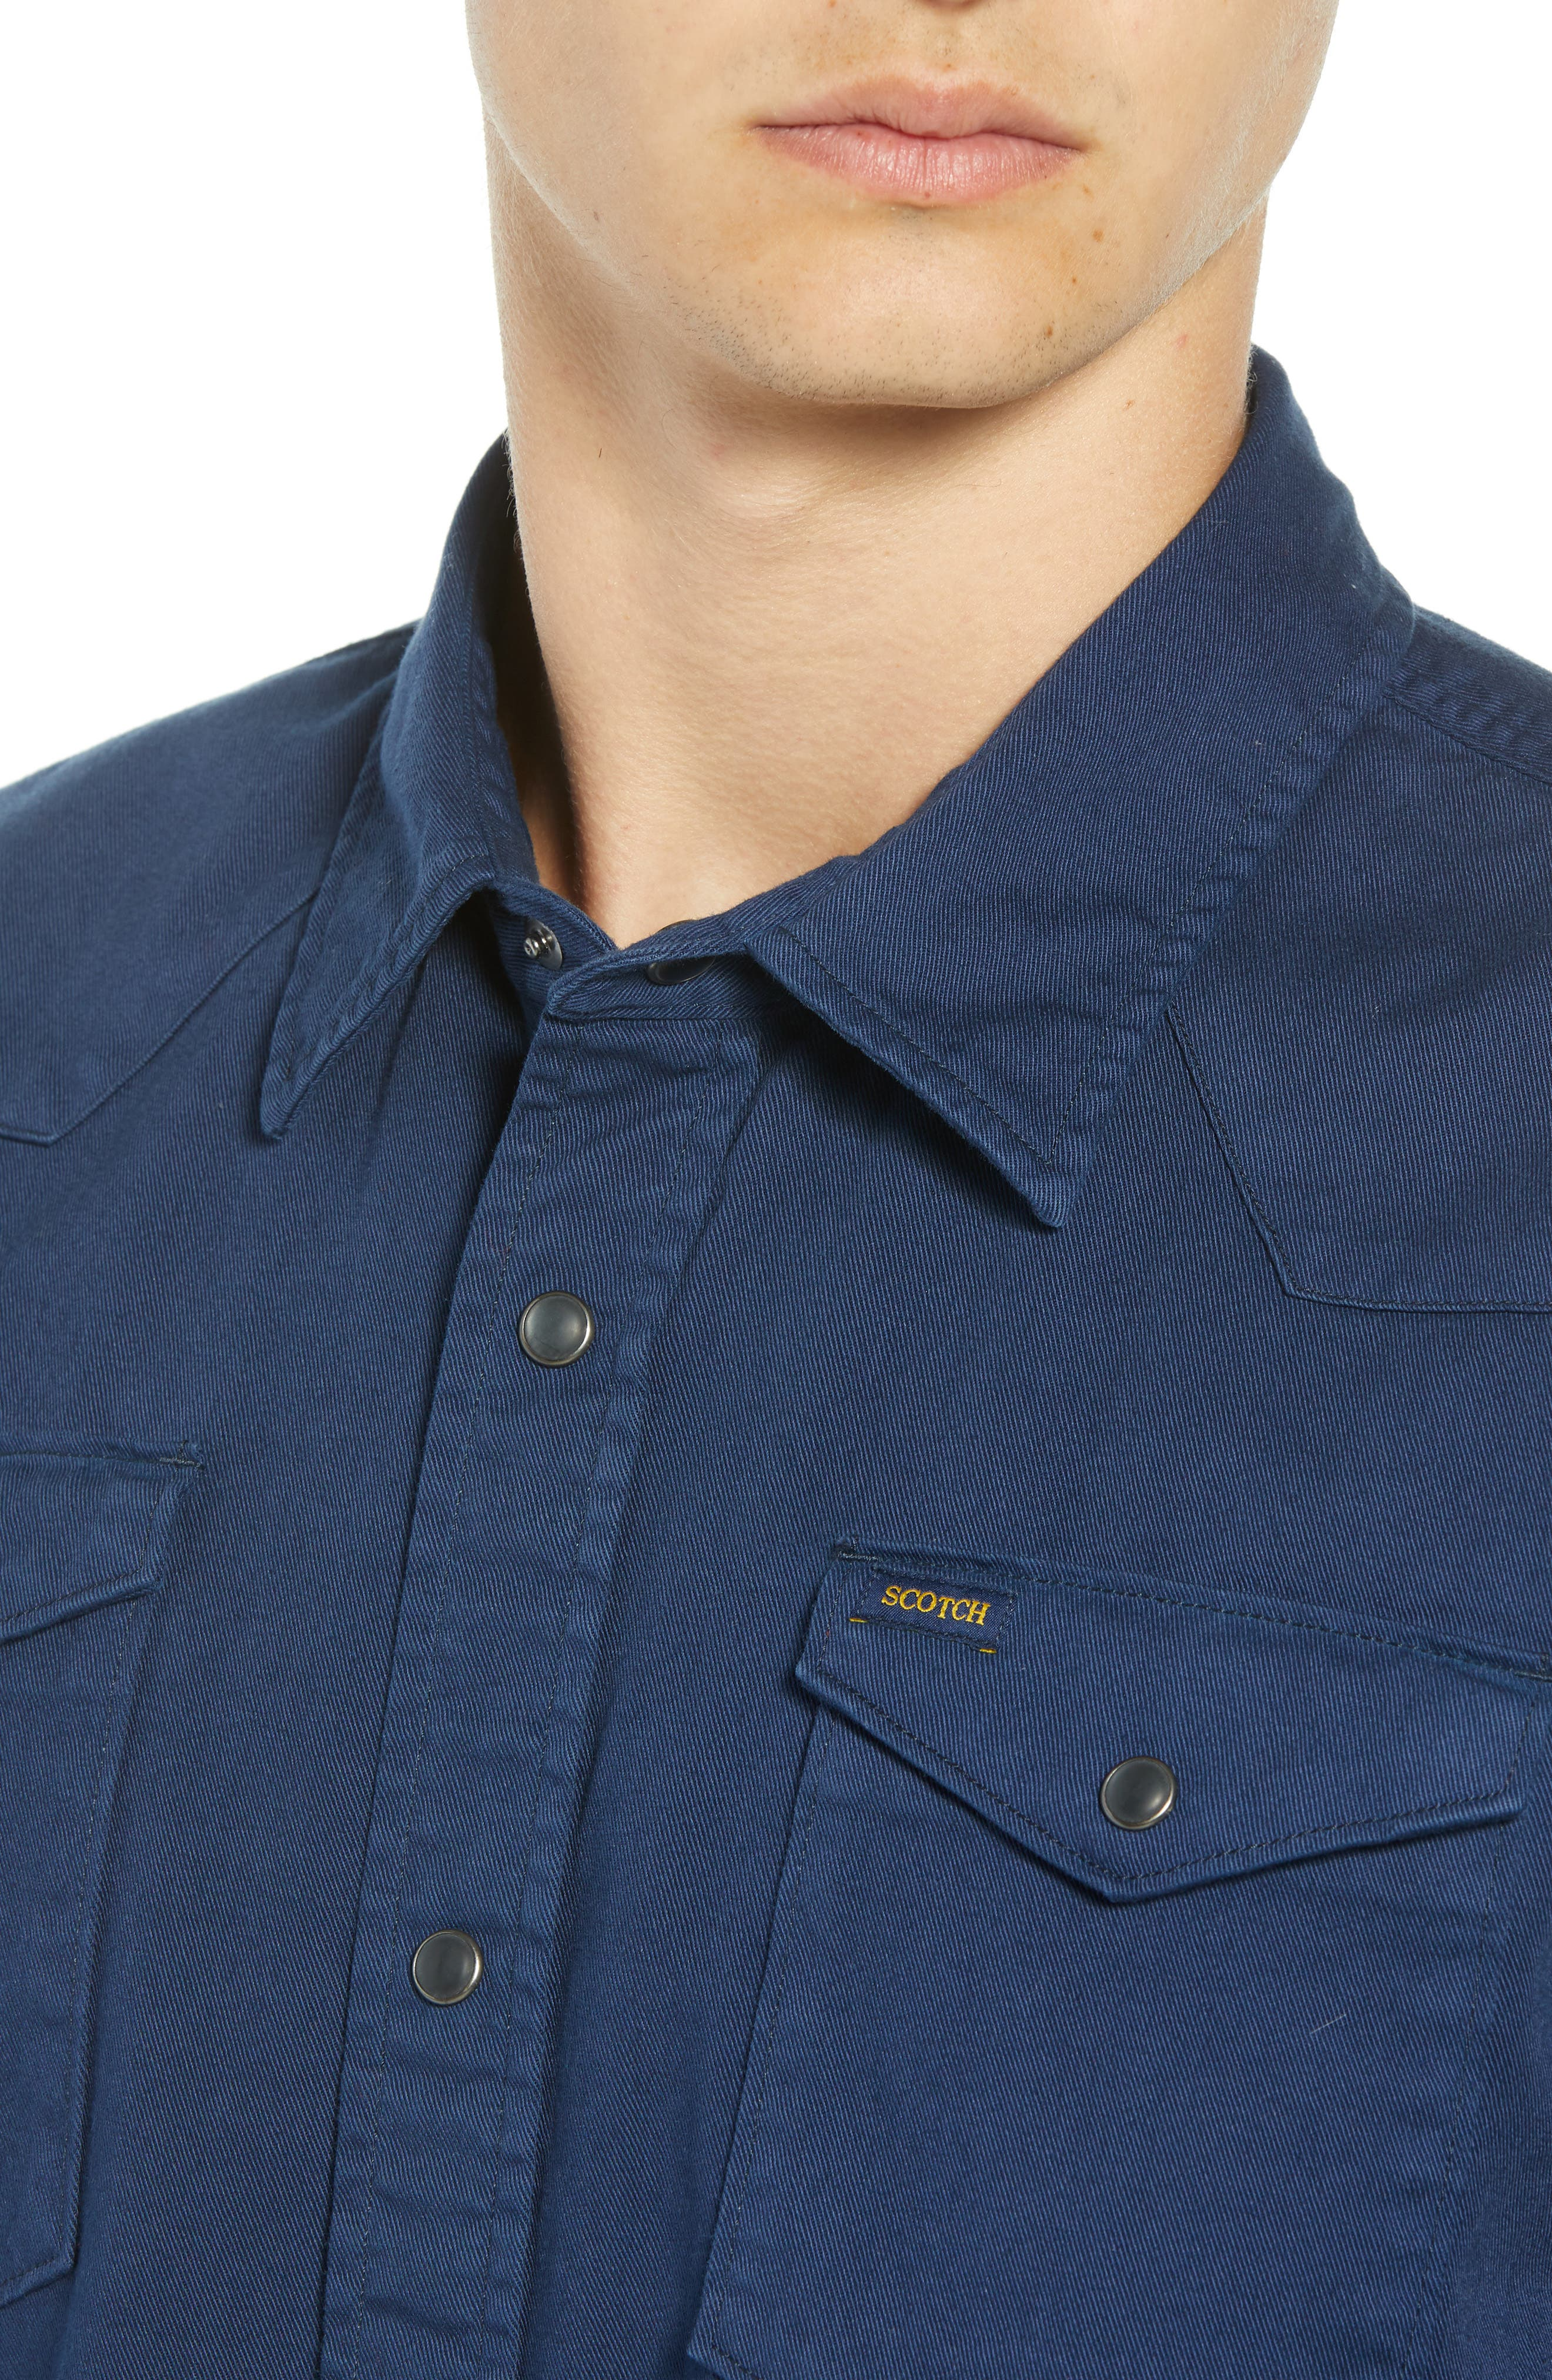 Regular Fit Garment Dyed Shirt,                             Alternate thumbnail 2, color,                             DENIM BLUE